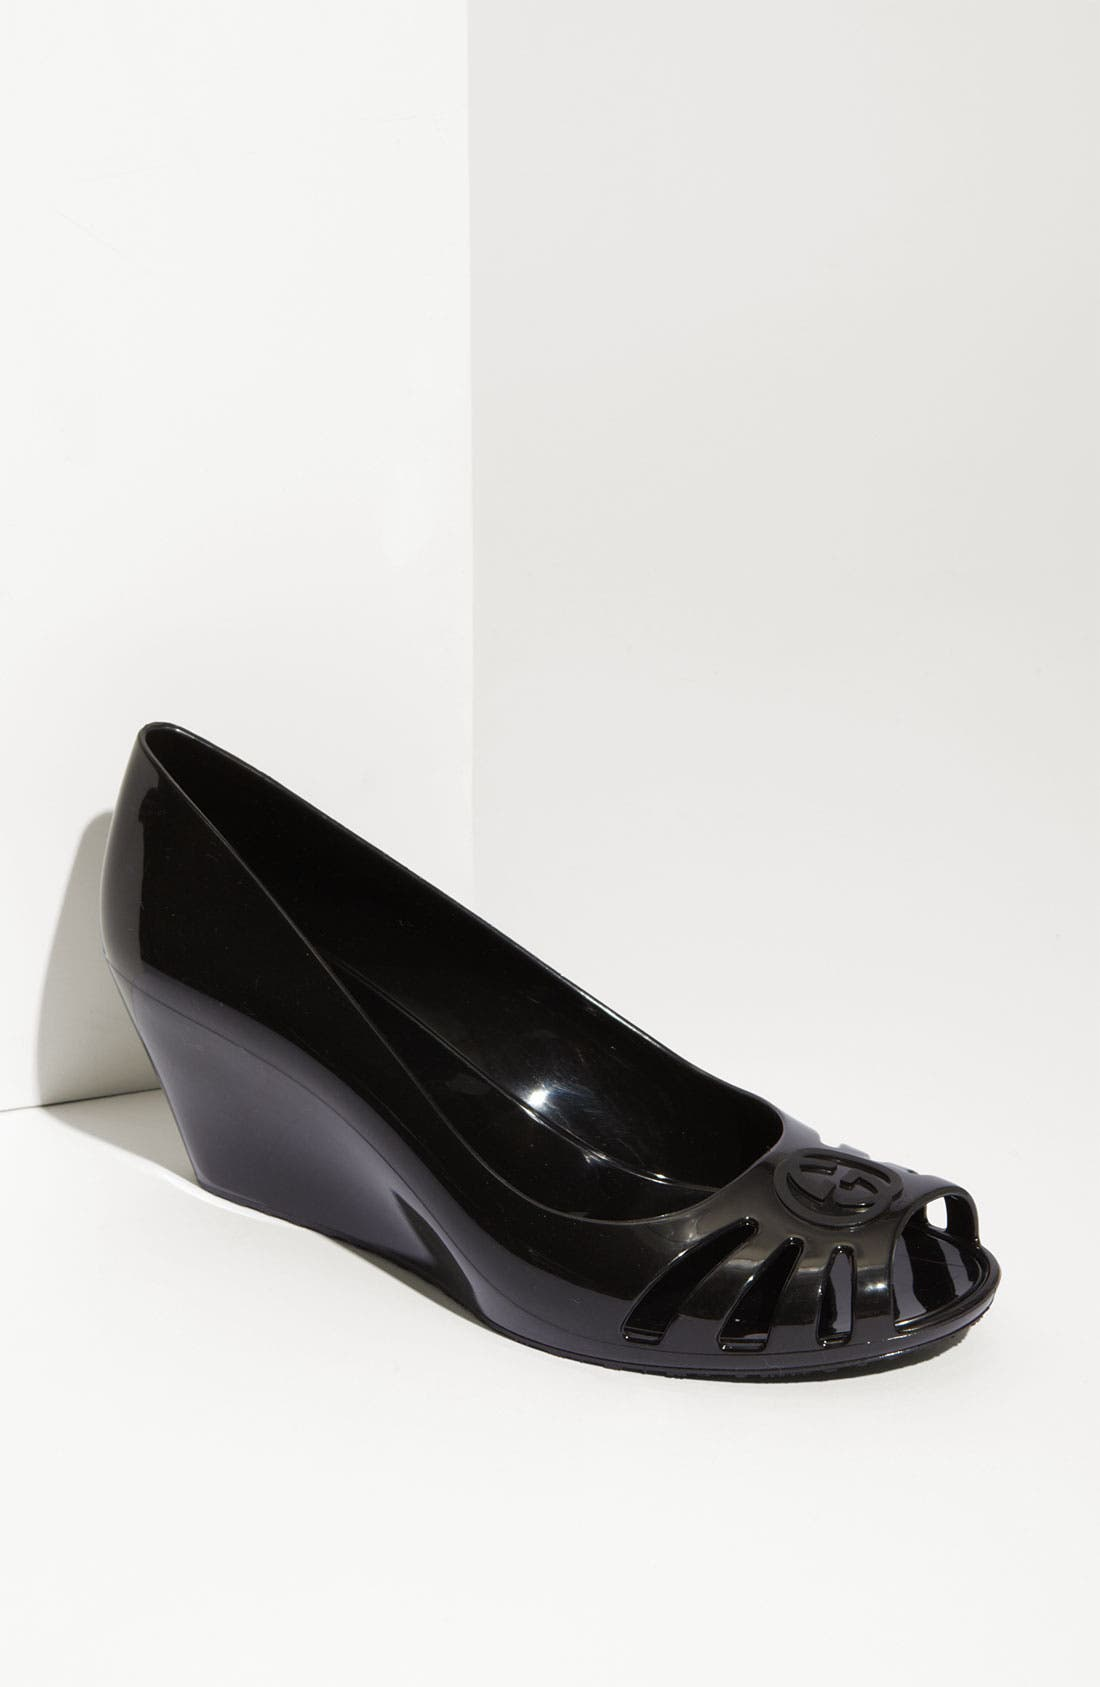 Alternate Image 1 Selected - Gucci 'Marola' Rubber Wedge